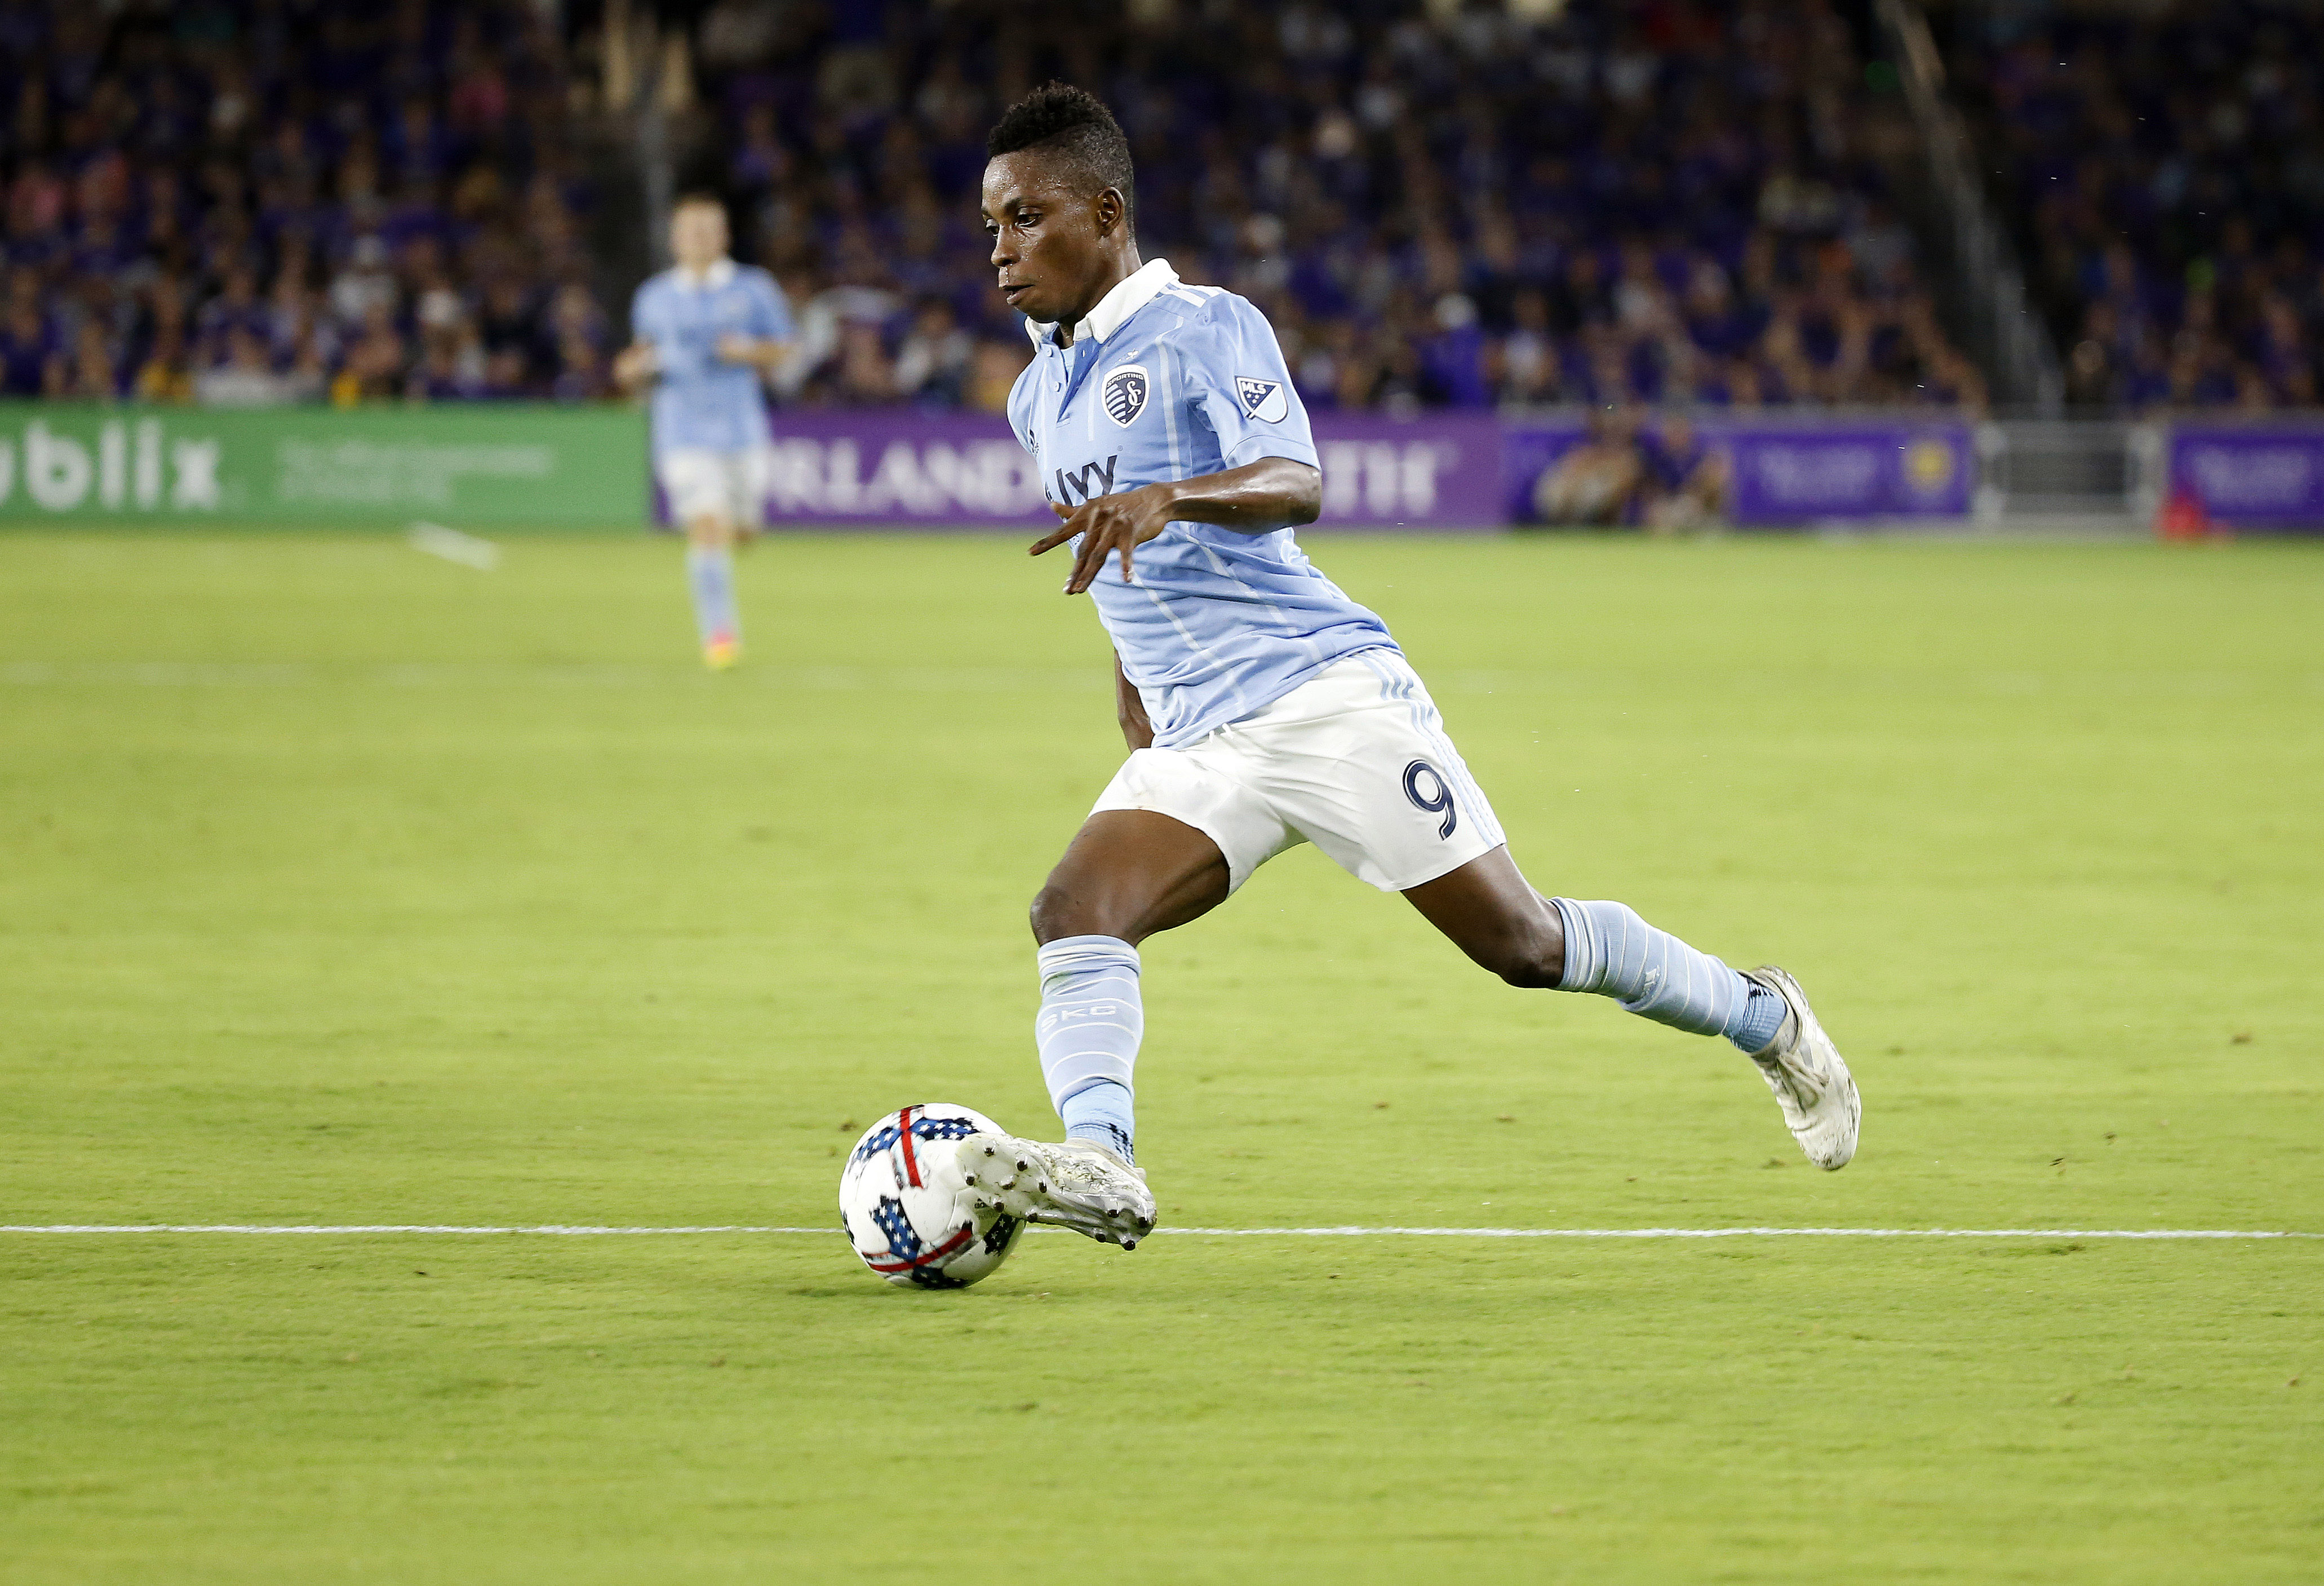 Fernandes scores 3 goals, Sporting KC beats Sounders 3-0